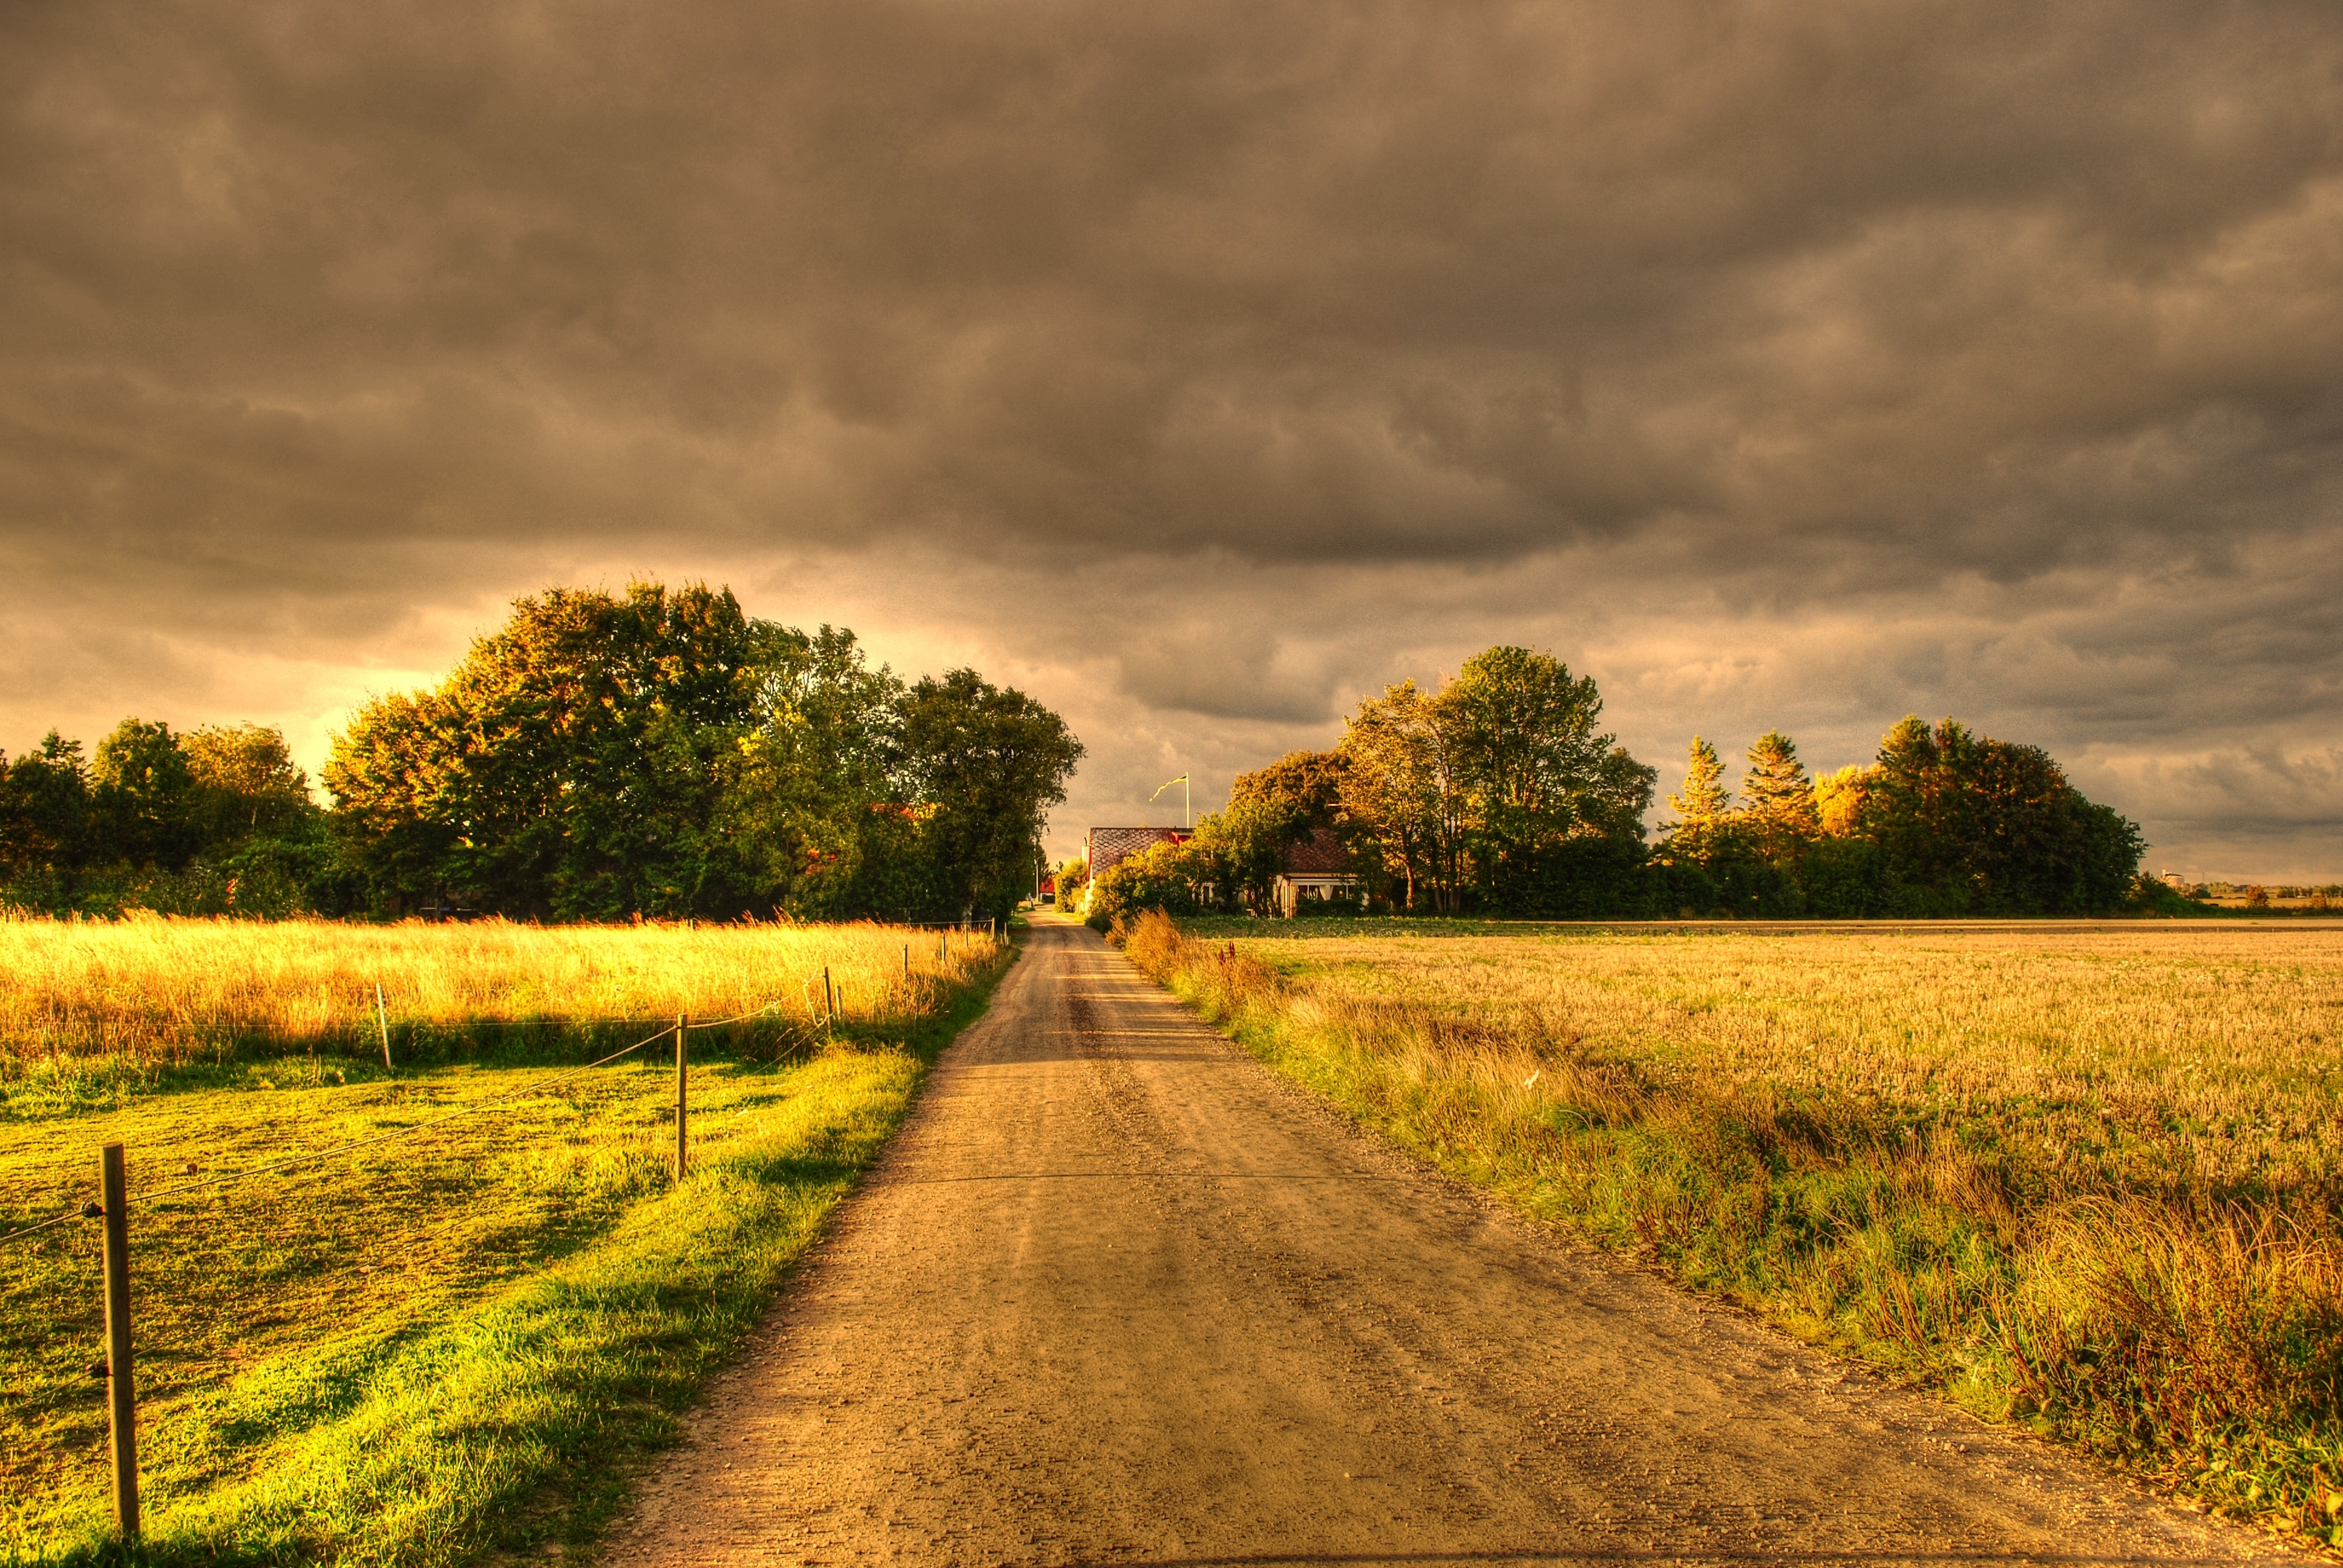 101054 download wallpaper Nature, Autumn, Fields, Road, Landscape screensavers and pictures for free